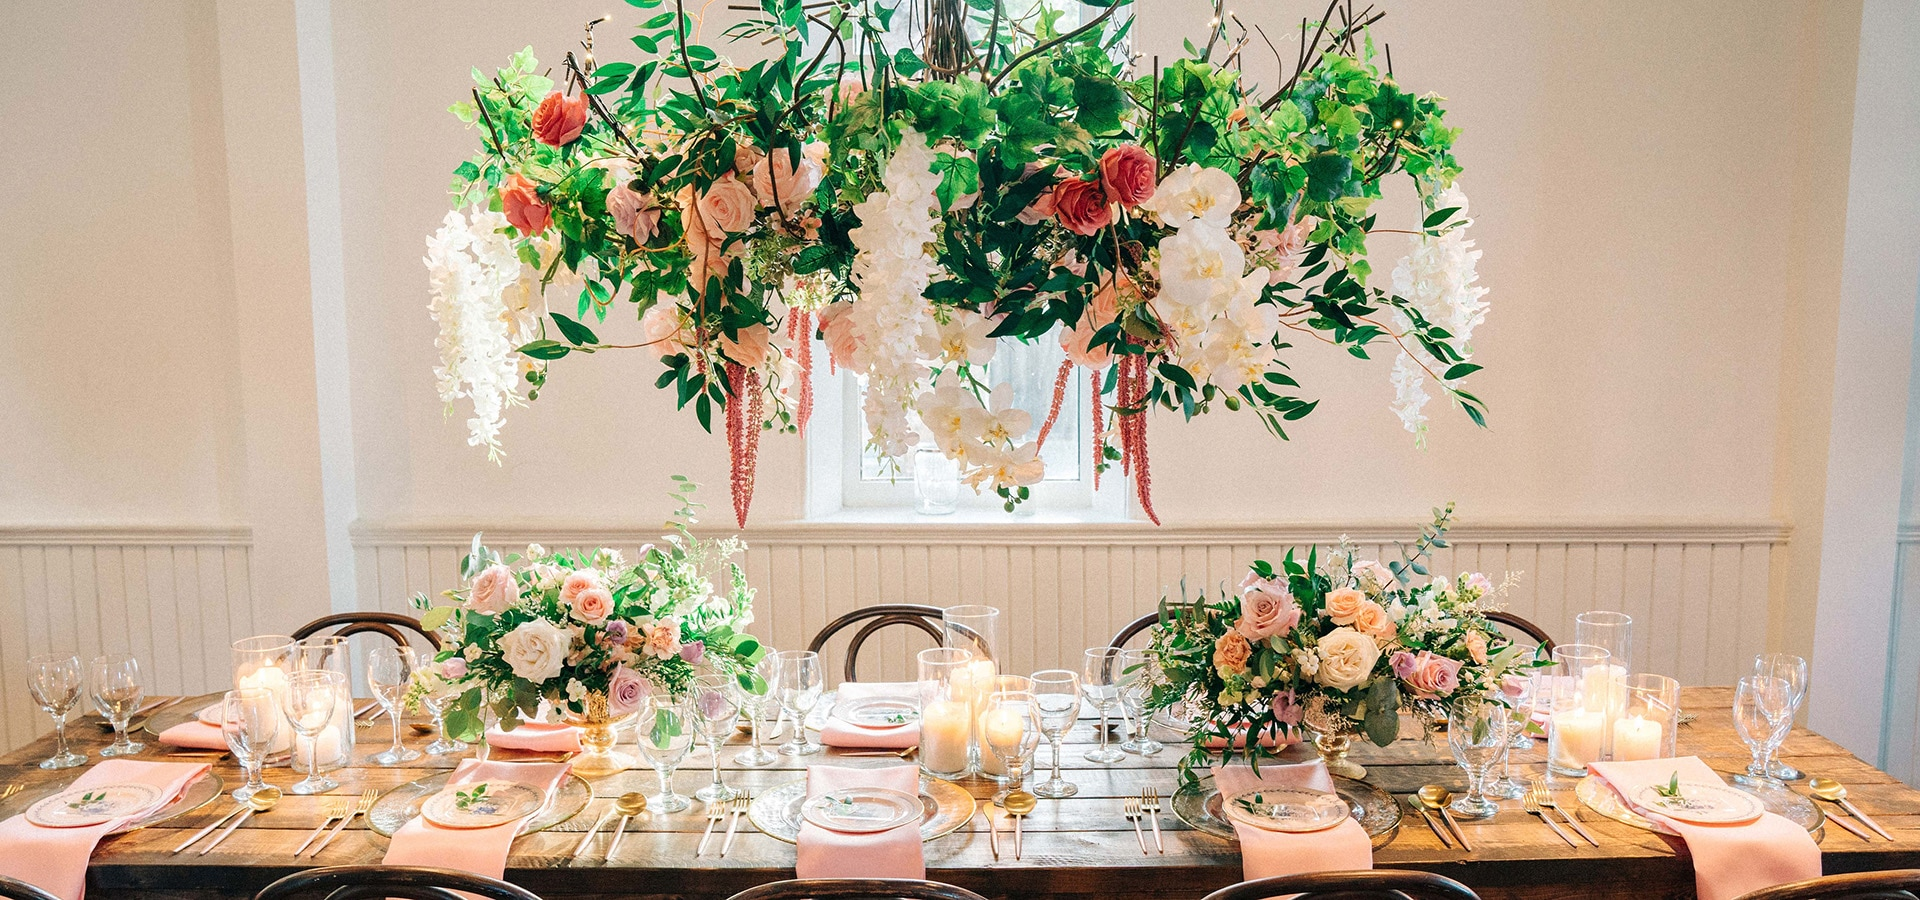 Hero image for 8 Floral Trends You Need to Know About for Intimate Weddings in 2021